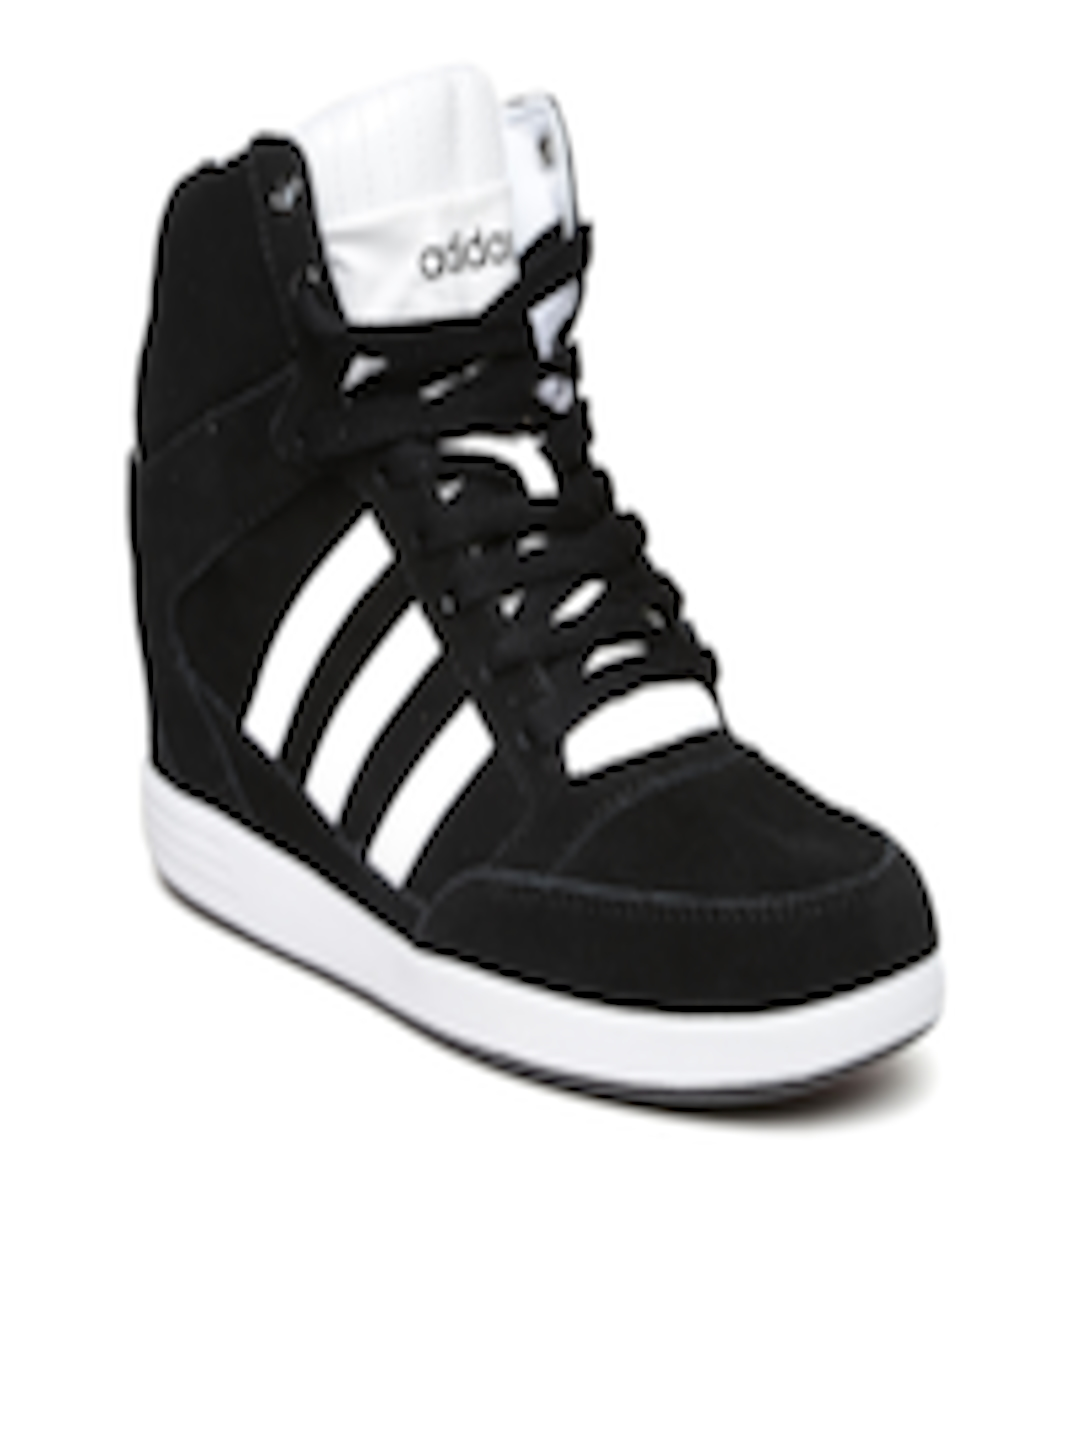 92c7299e970e Buy ADIDAS NEO Women Black Super Wedge Suede Sneakers - Casual Shoes for  Women 1193656